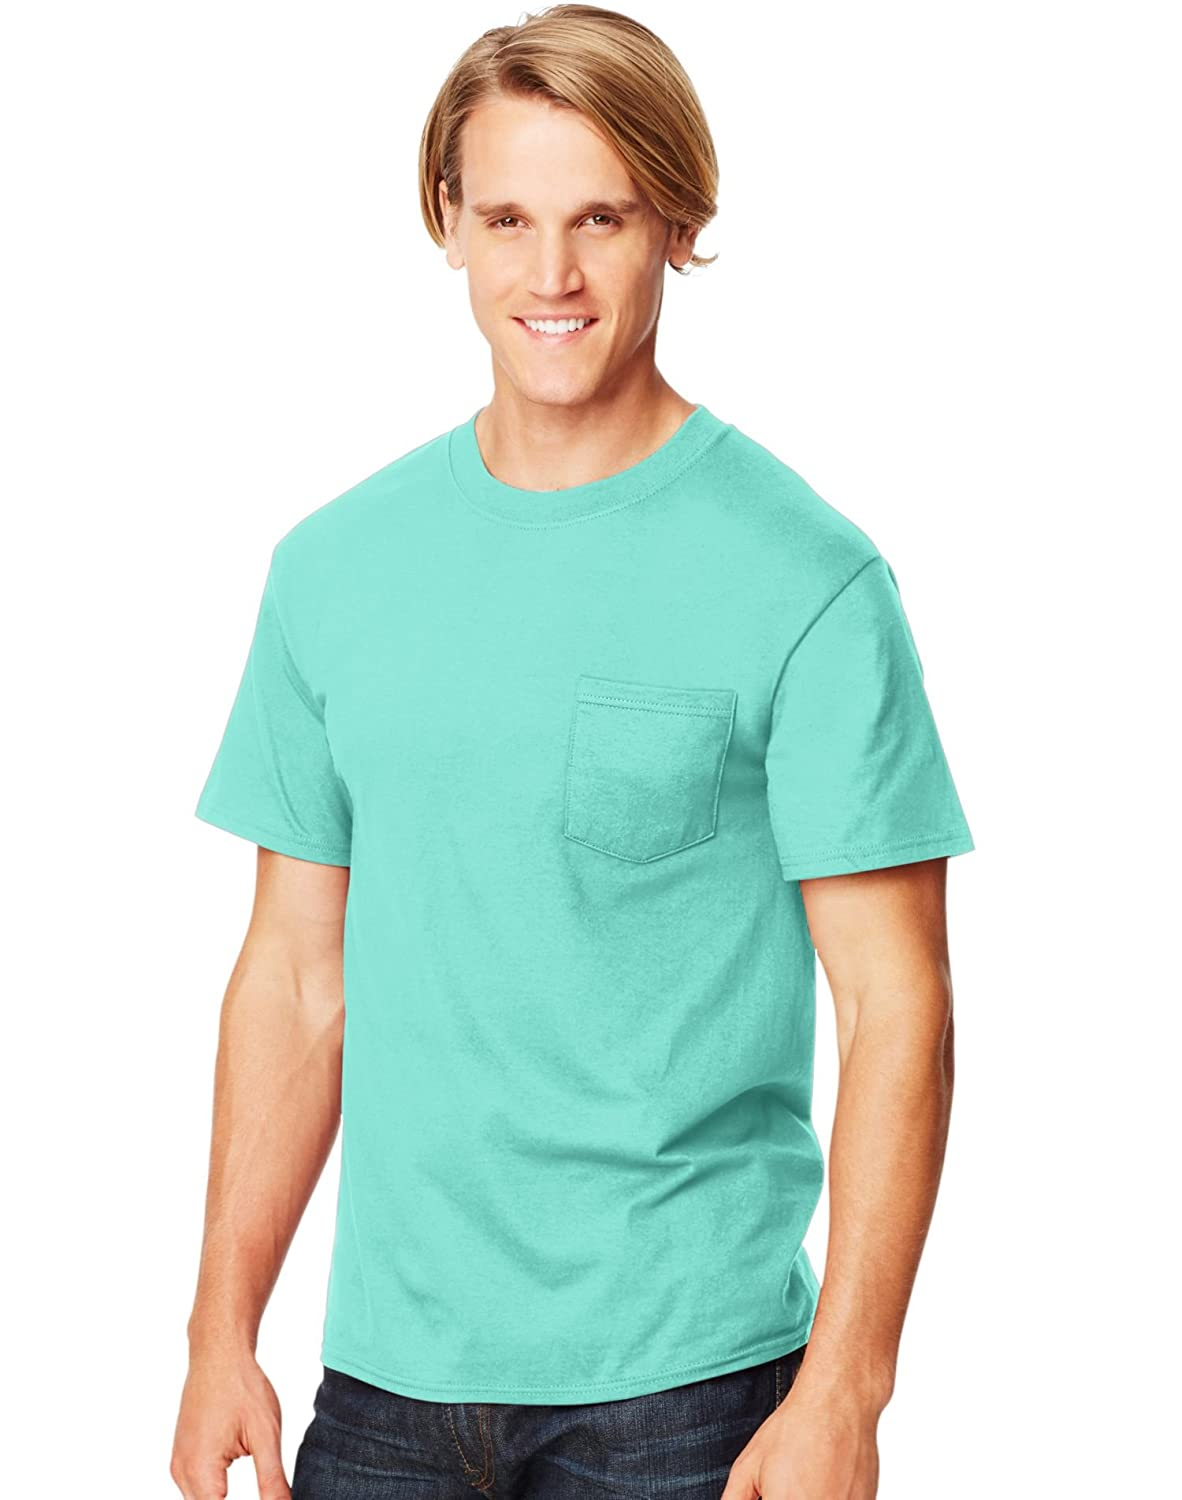 d8fab000f Hanes Beefy T Shirt Review « Alzheimer's Network of Oregon